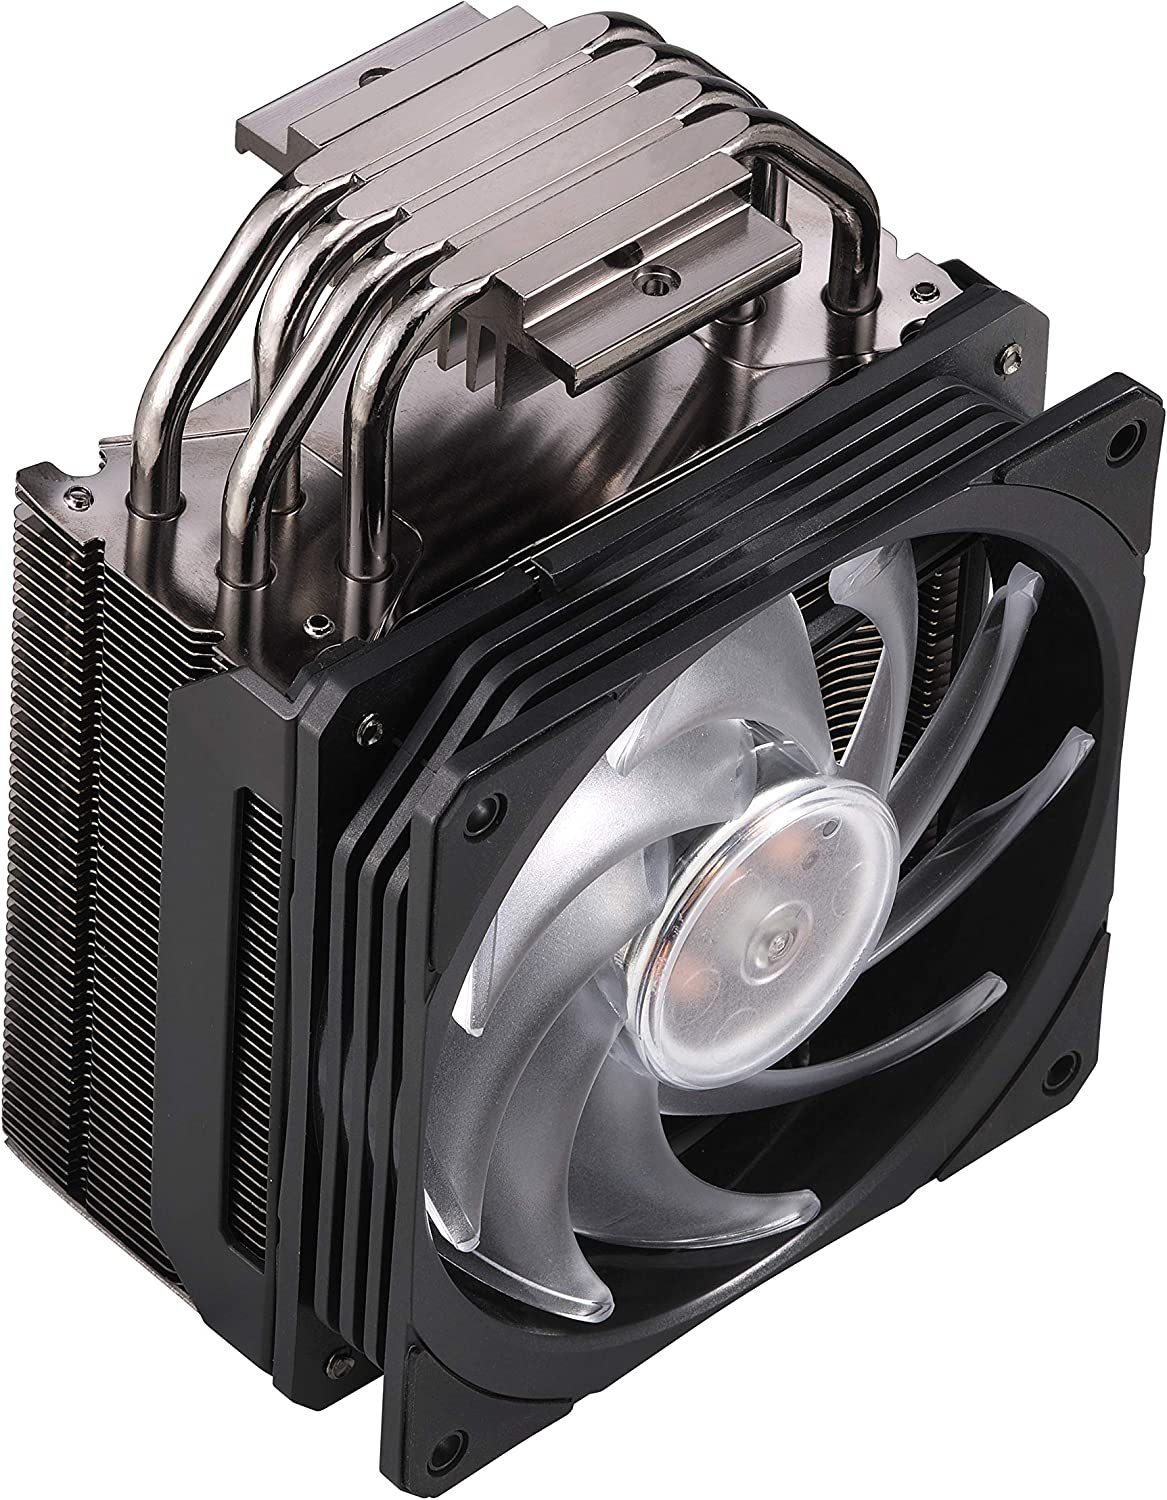 Best CPU Cooler For i7 8700K,CPU Cooler For i7 8700K, DigitalUpBeat - Your one step shop for all your  tech gifts and gadgets